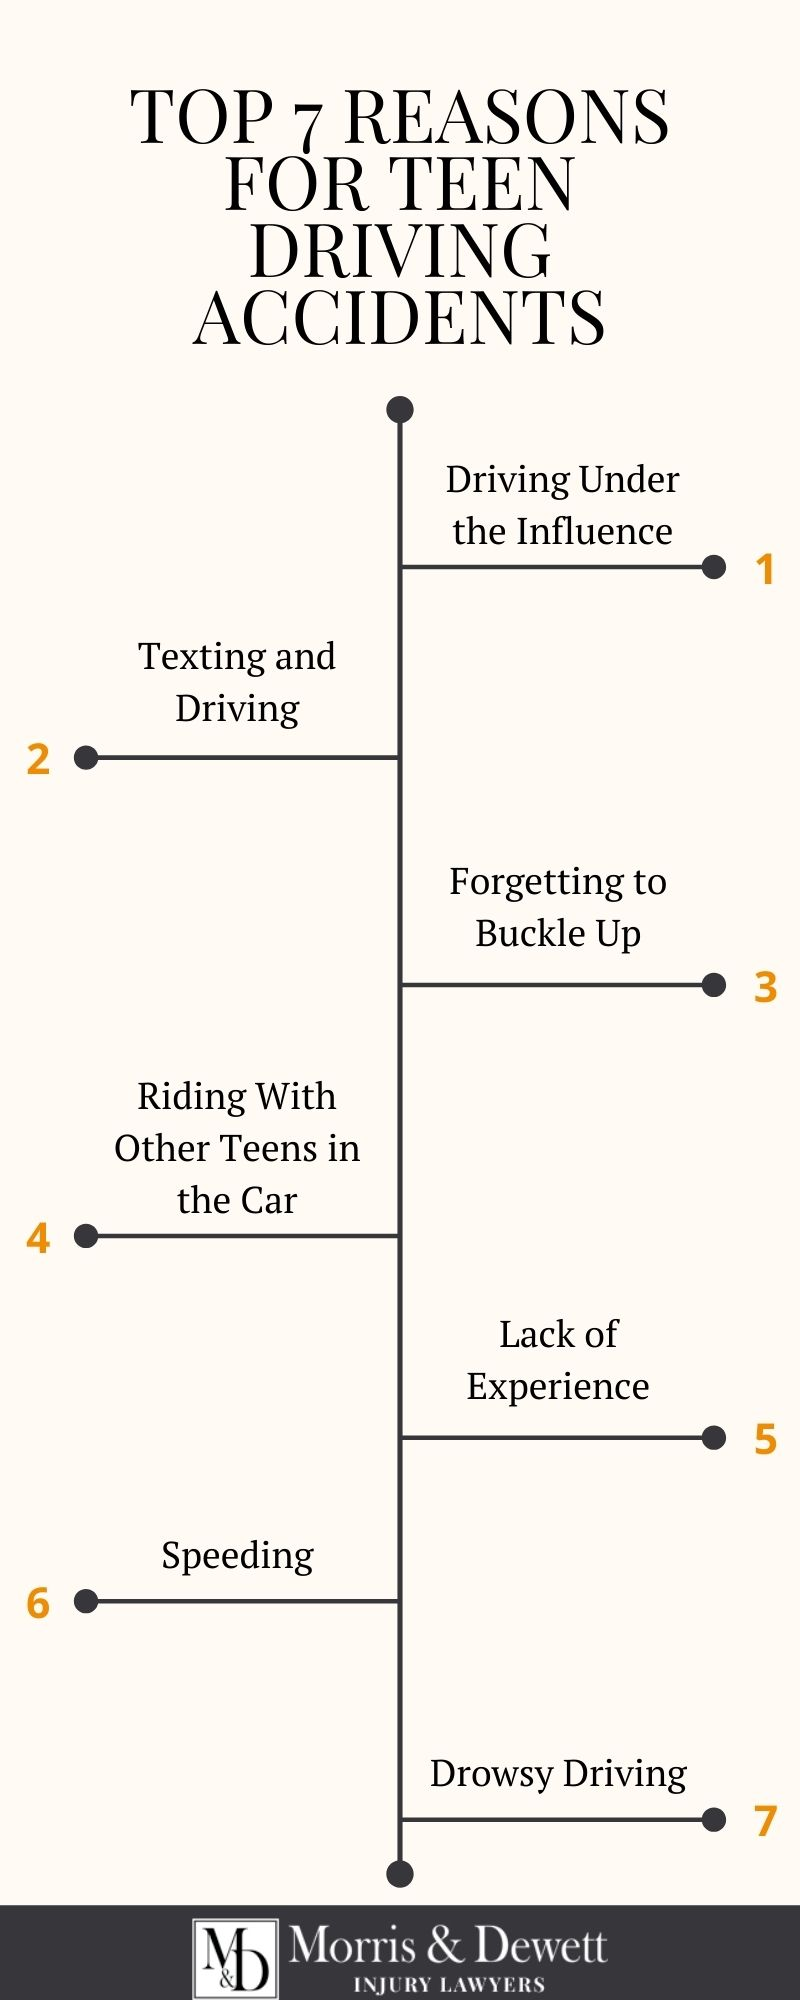 Infographic: Top 7 Reasons for Teen Driving Accidents. 1. Driving Under the Influence; 2. Texting and Driving; 3. Forgetting to Buckle Up; 4. Riding With Other Teens in the Car; 5. Lack of Experience; 6. Speeding; 7. Drowsy Driving